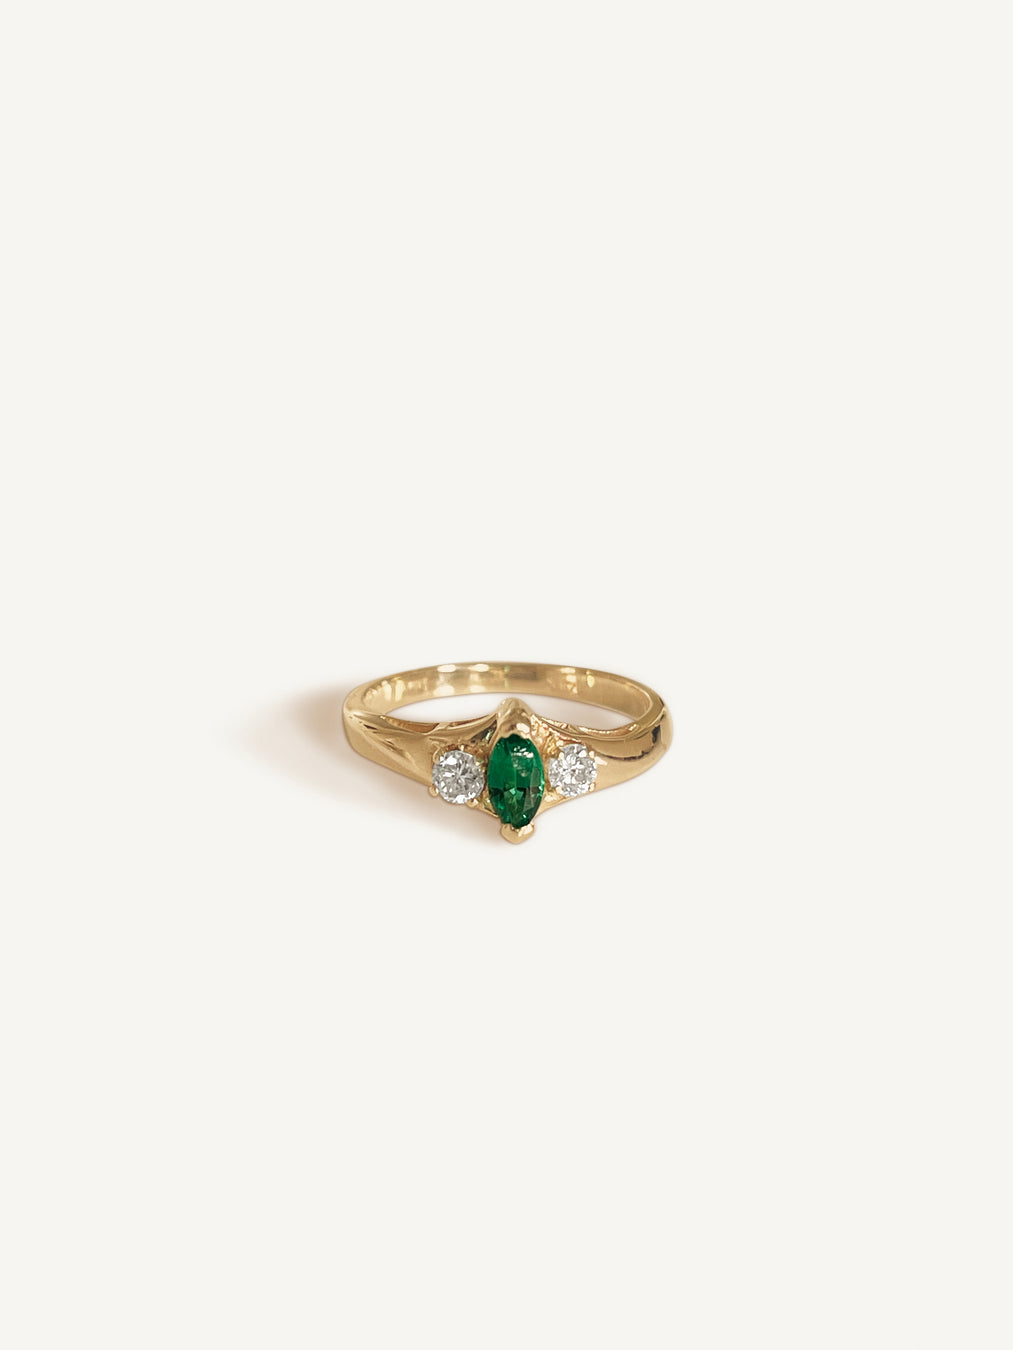 14k Marquise Emerald Ring With Diamonds